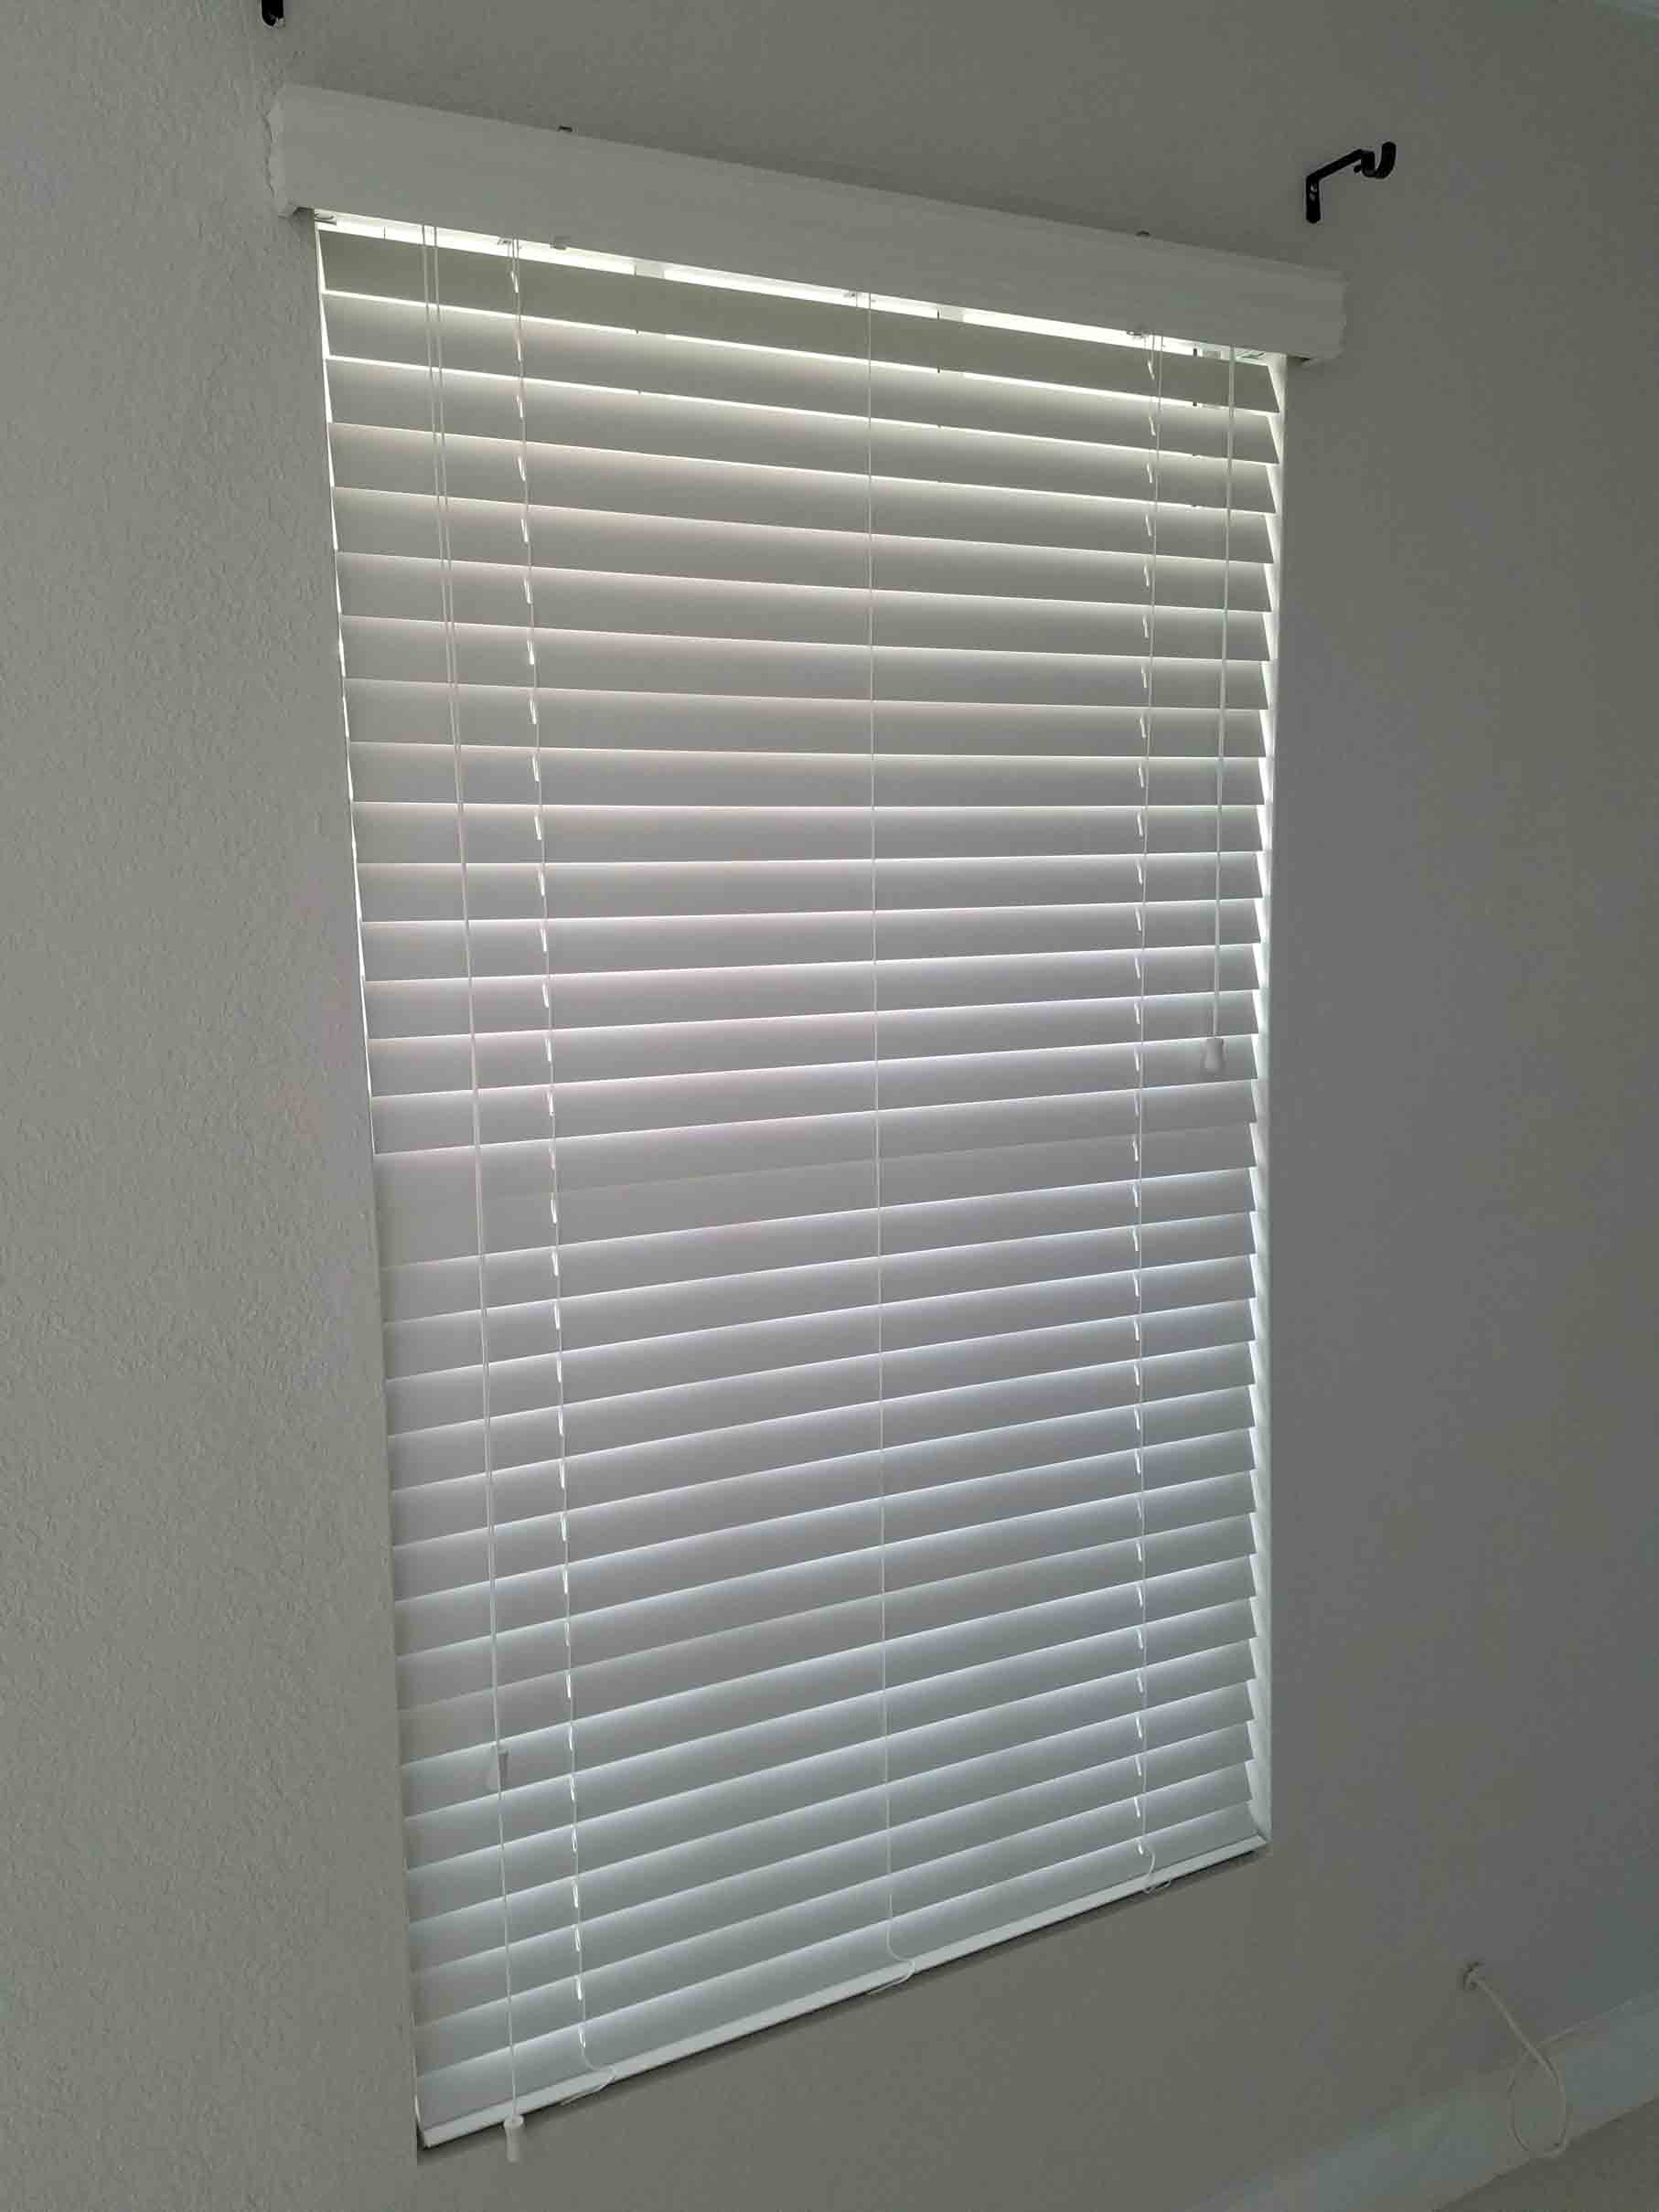 wood blinds gallery WOOD BLINDS GALLERY 20180120 120610